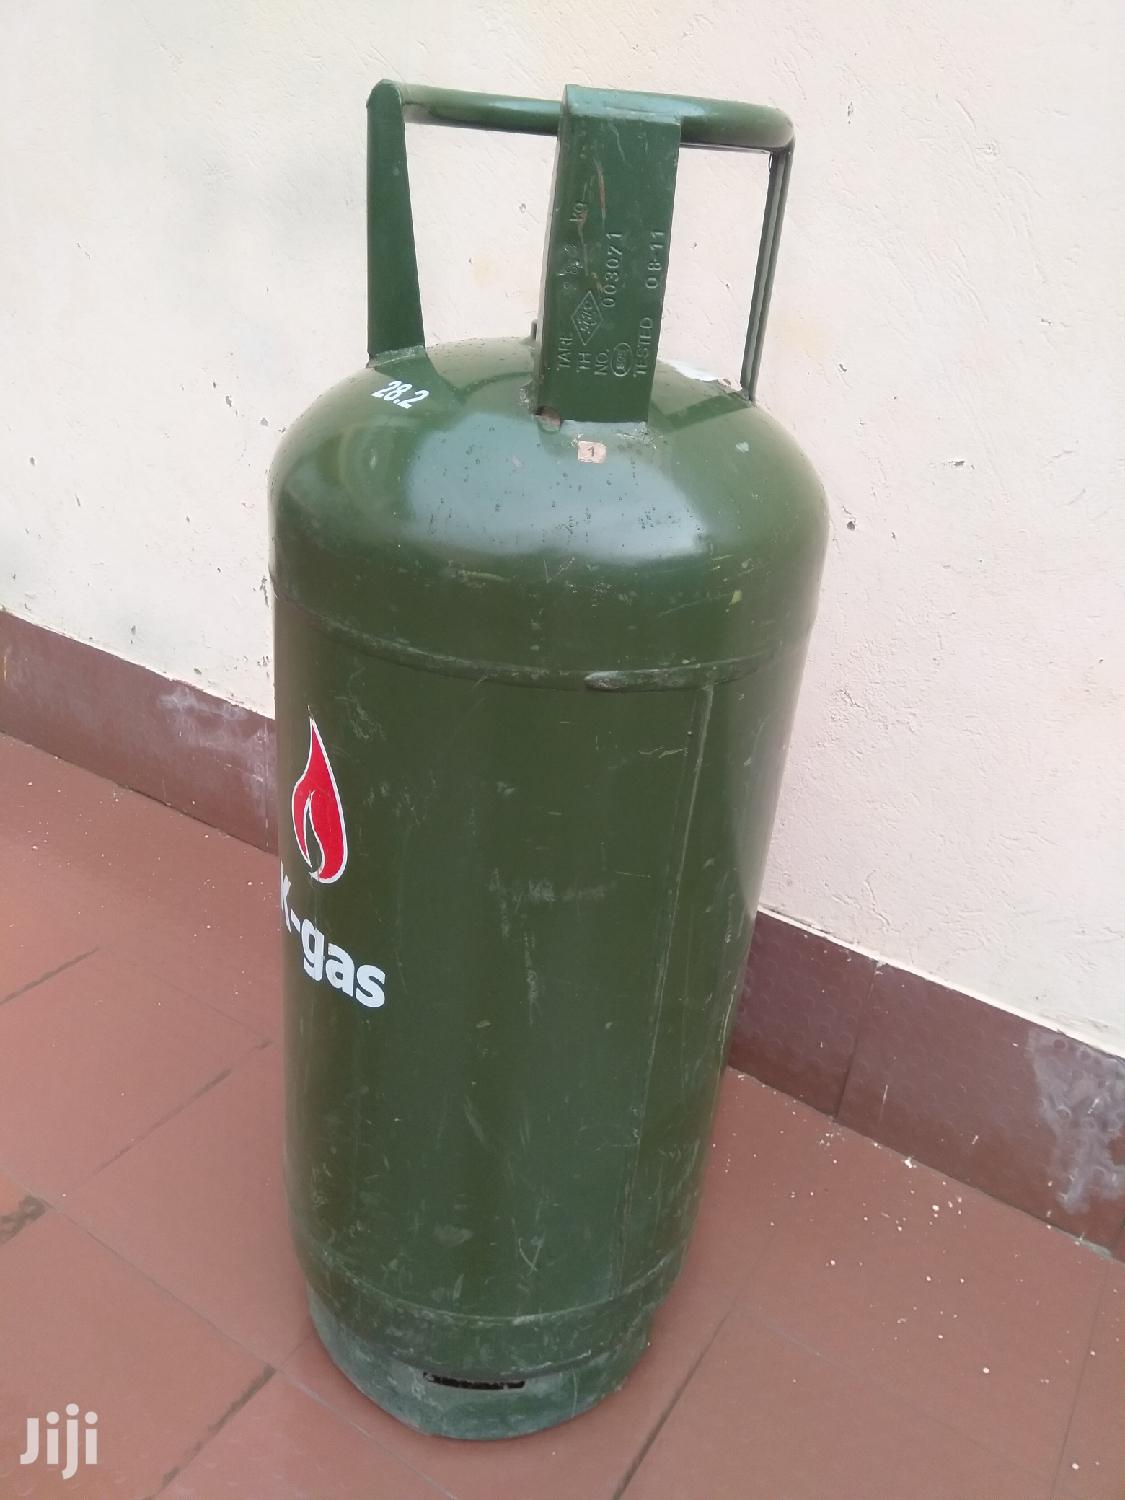 K-gas 40kgs On Quick Sale. | Kitchen Appliances for sale in Embakasi, Nairobi, Kenya